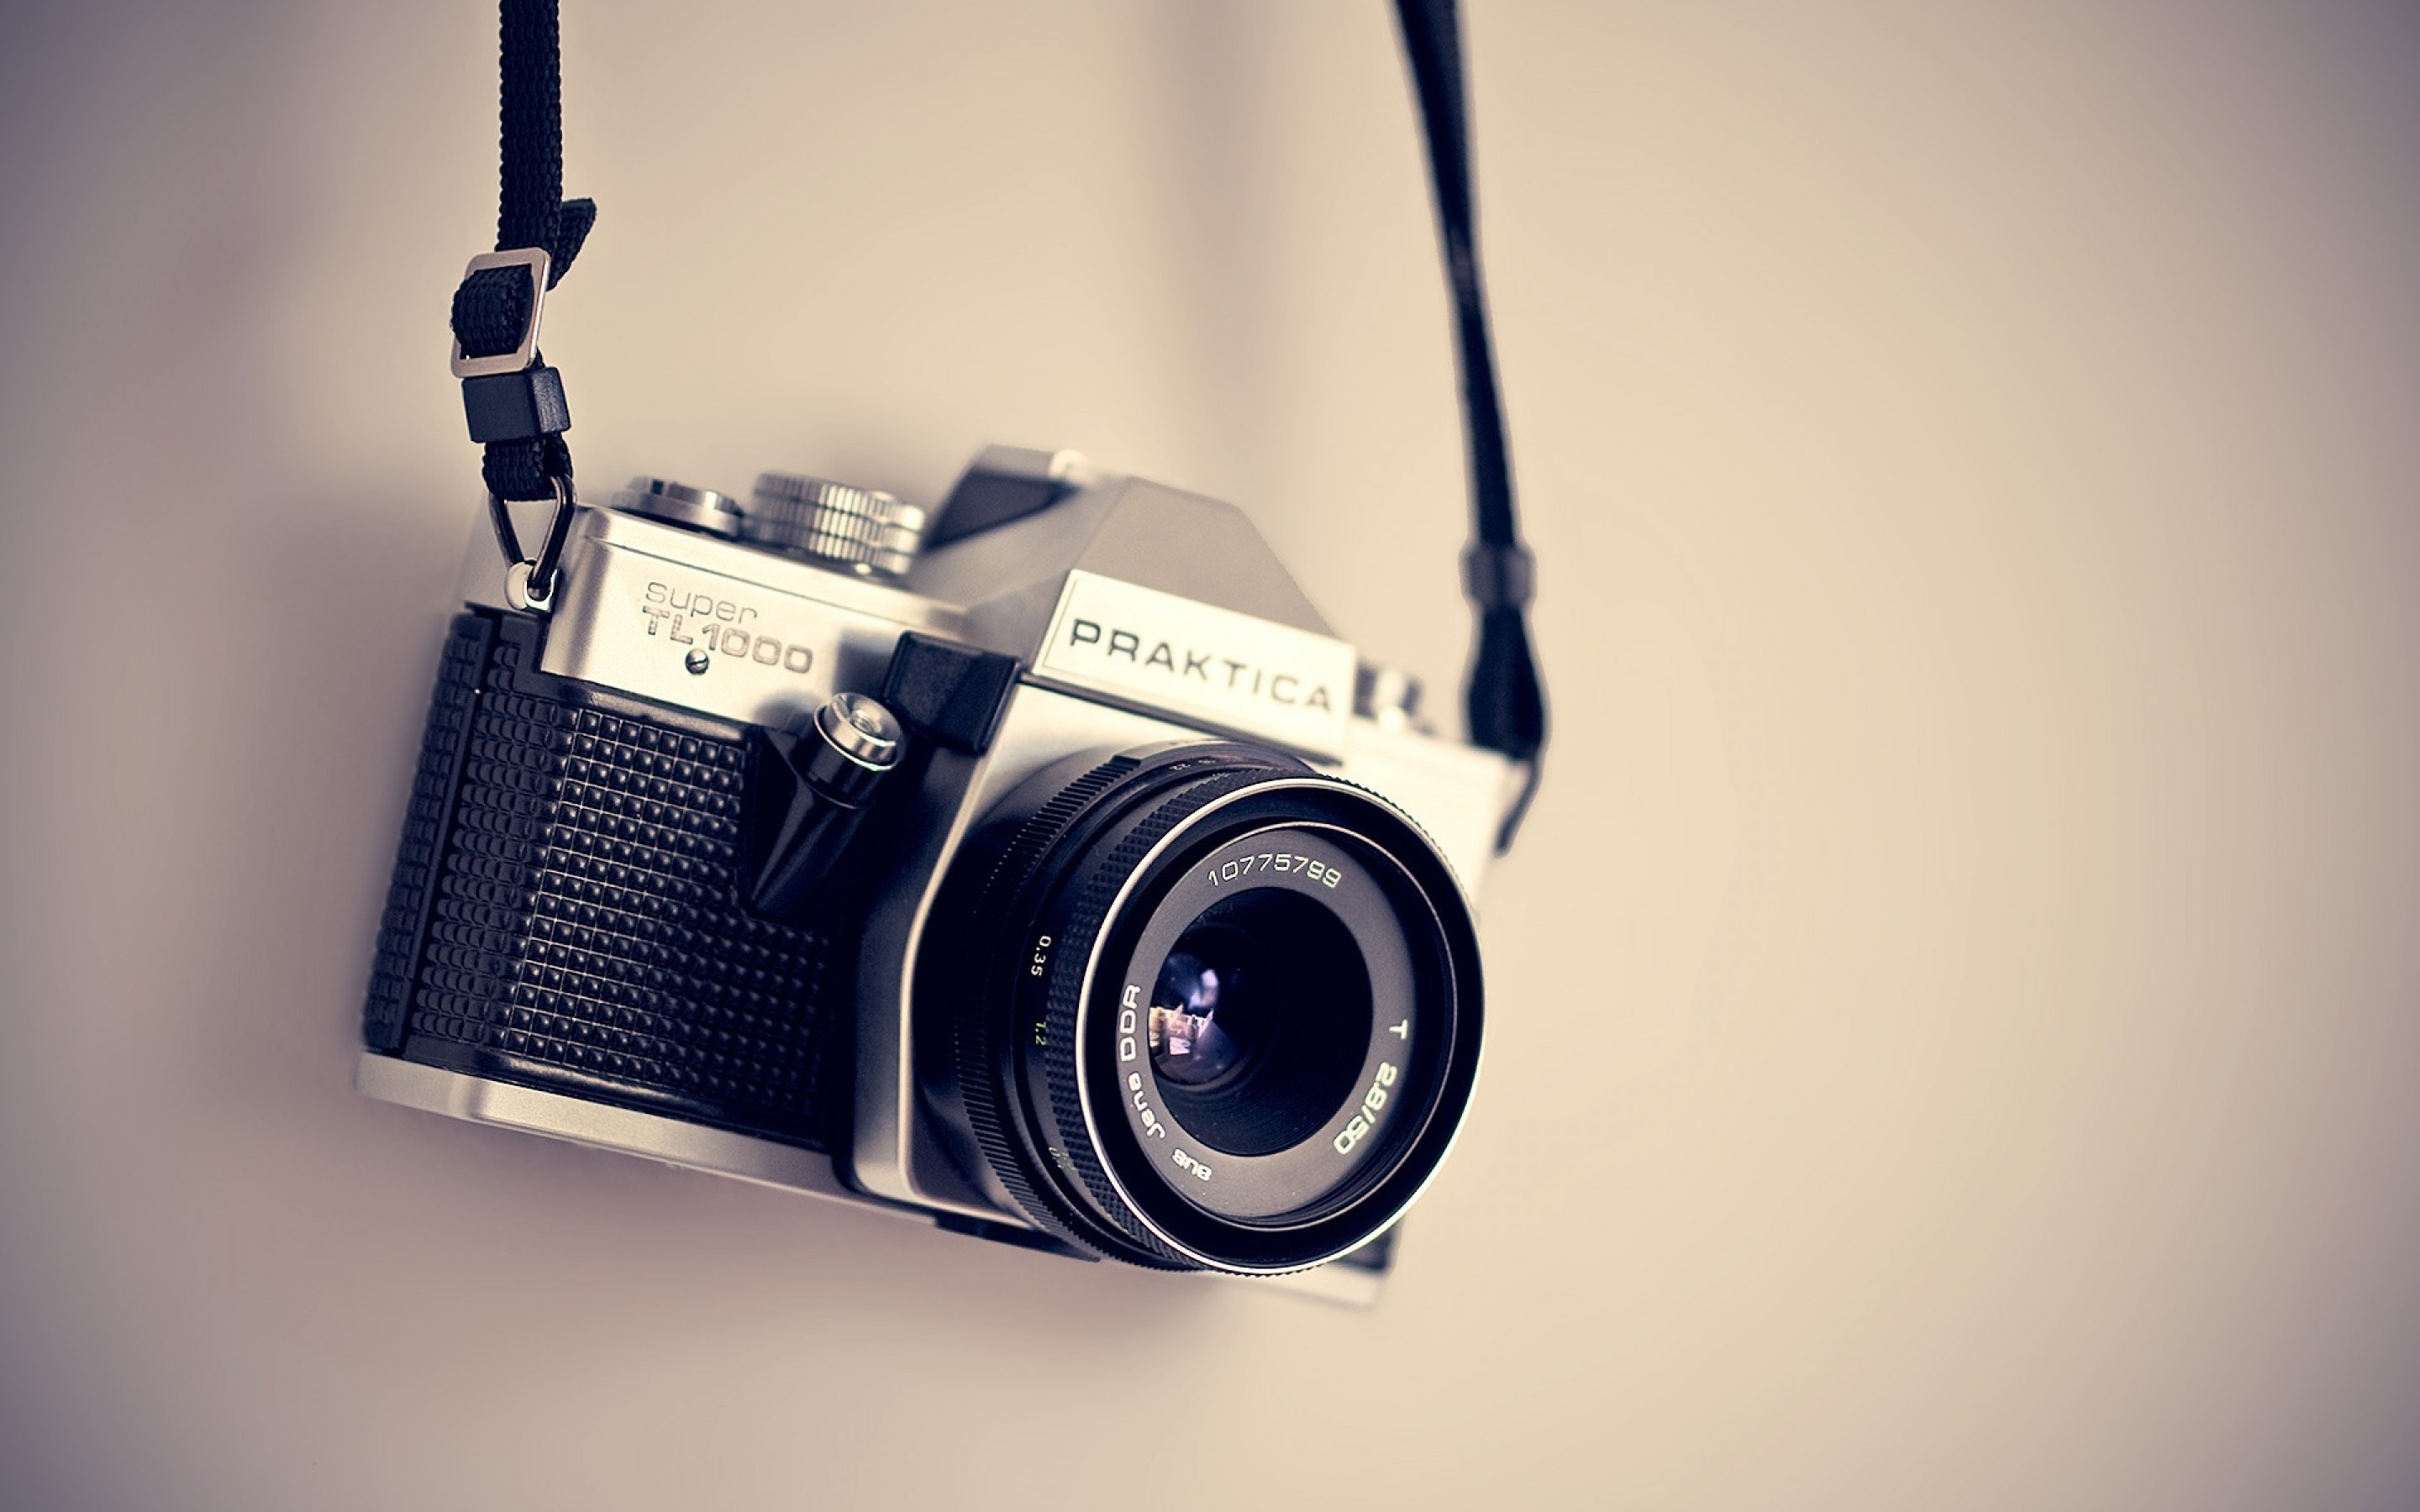 What Is Image Clipping Service And What Are Some of Its Benefits